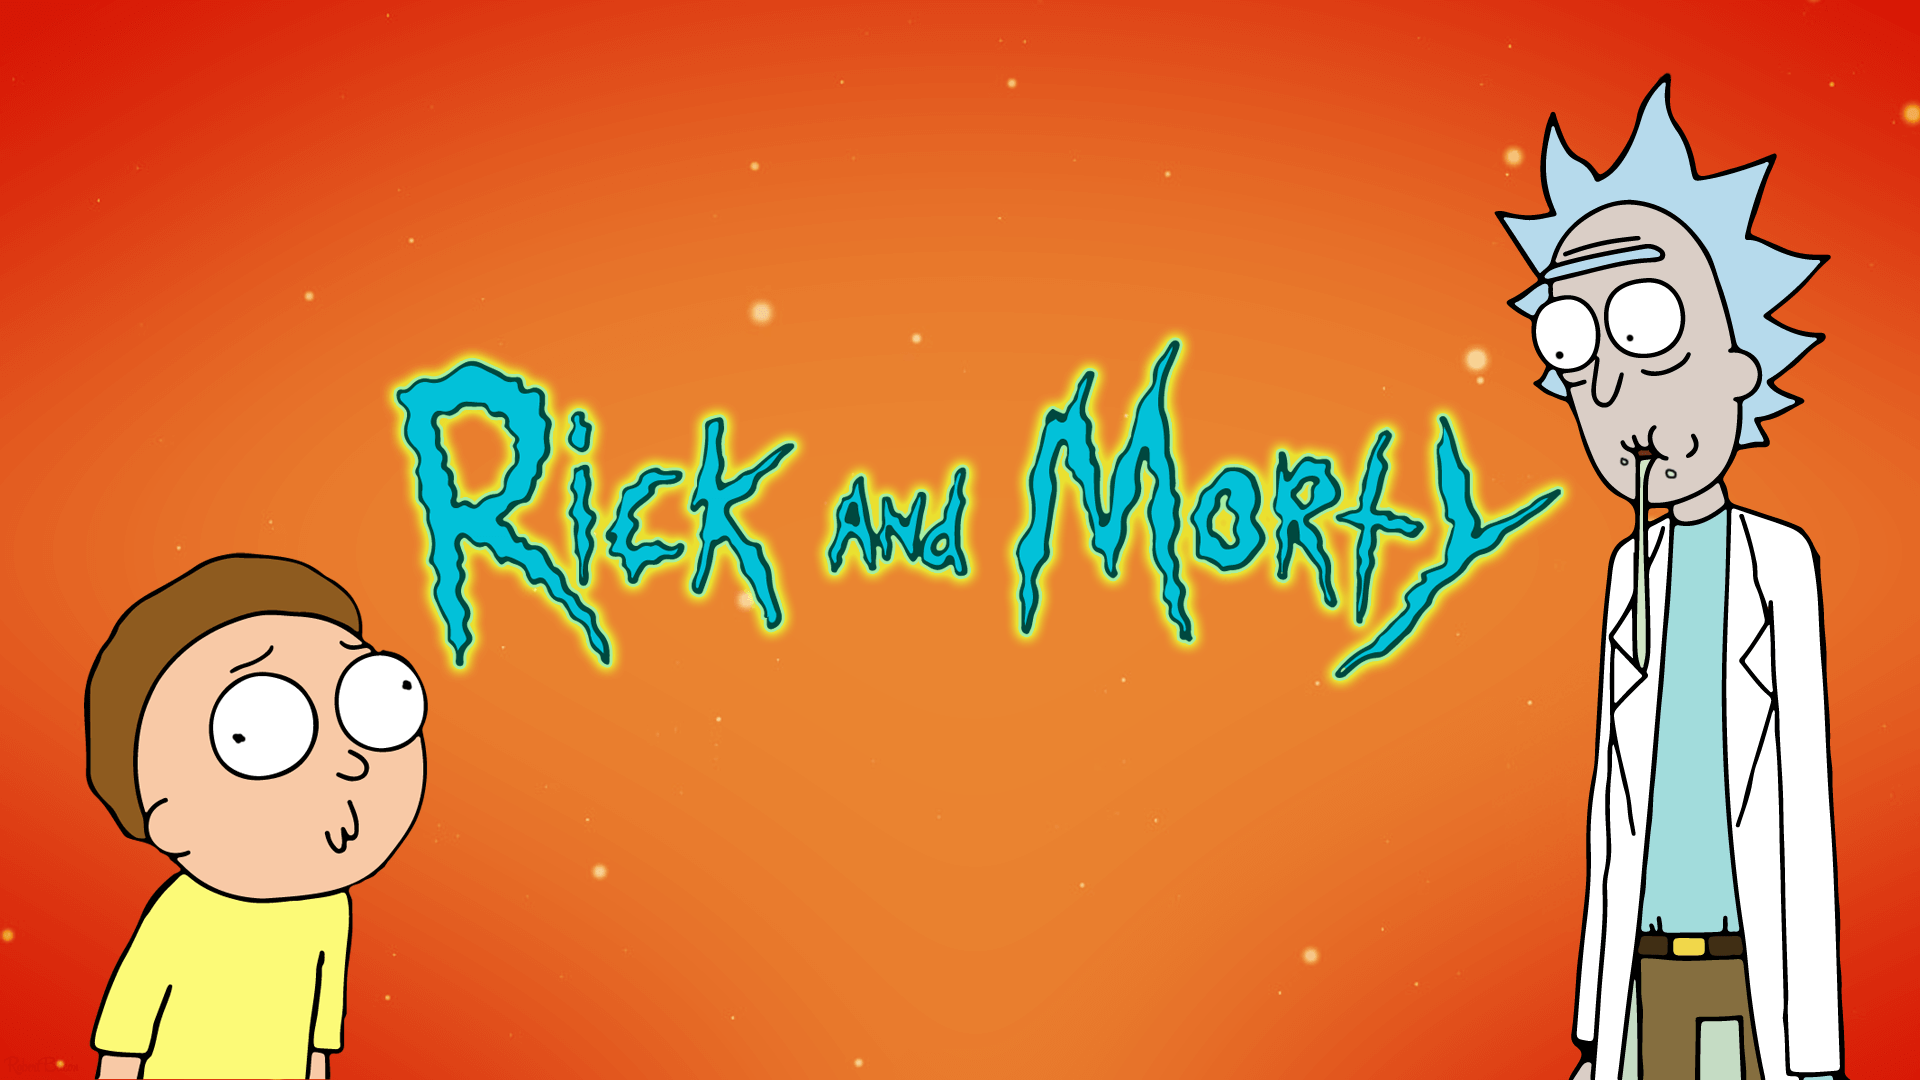 rick and morty supreme wallpaper